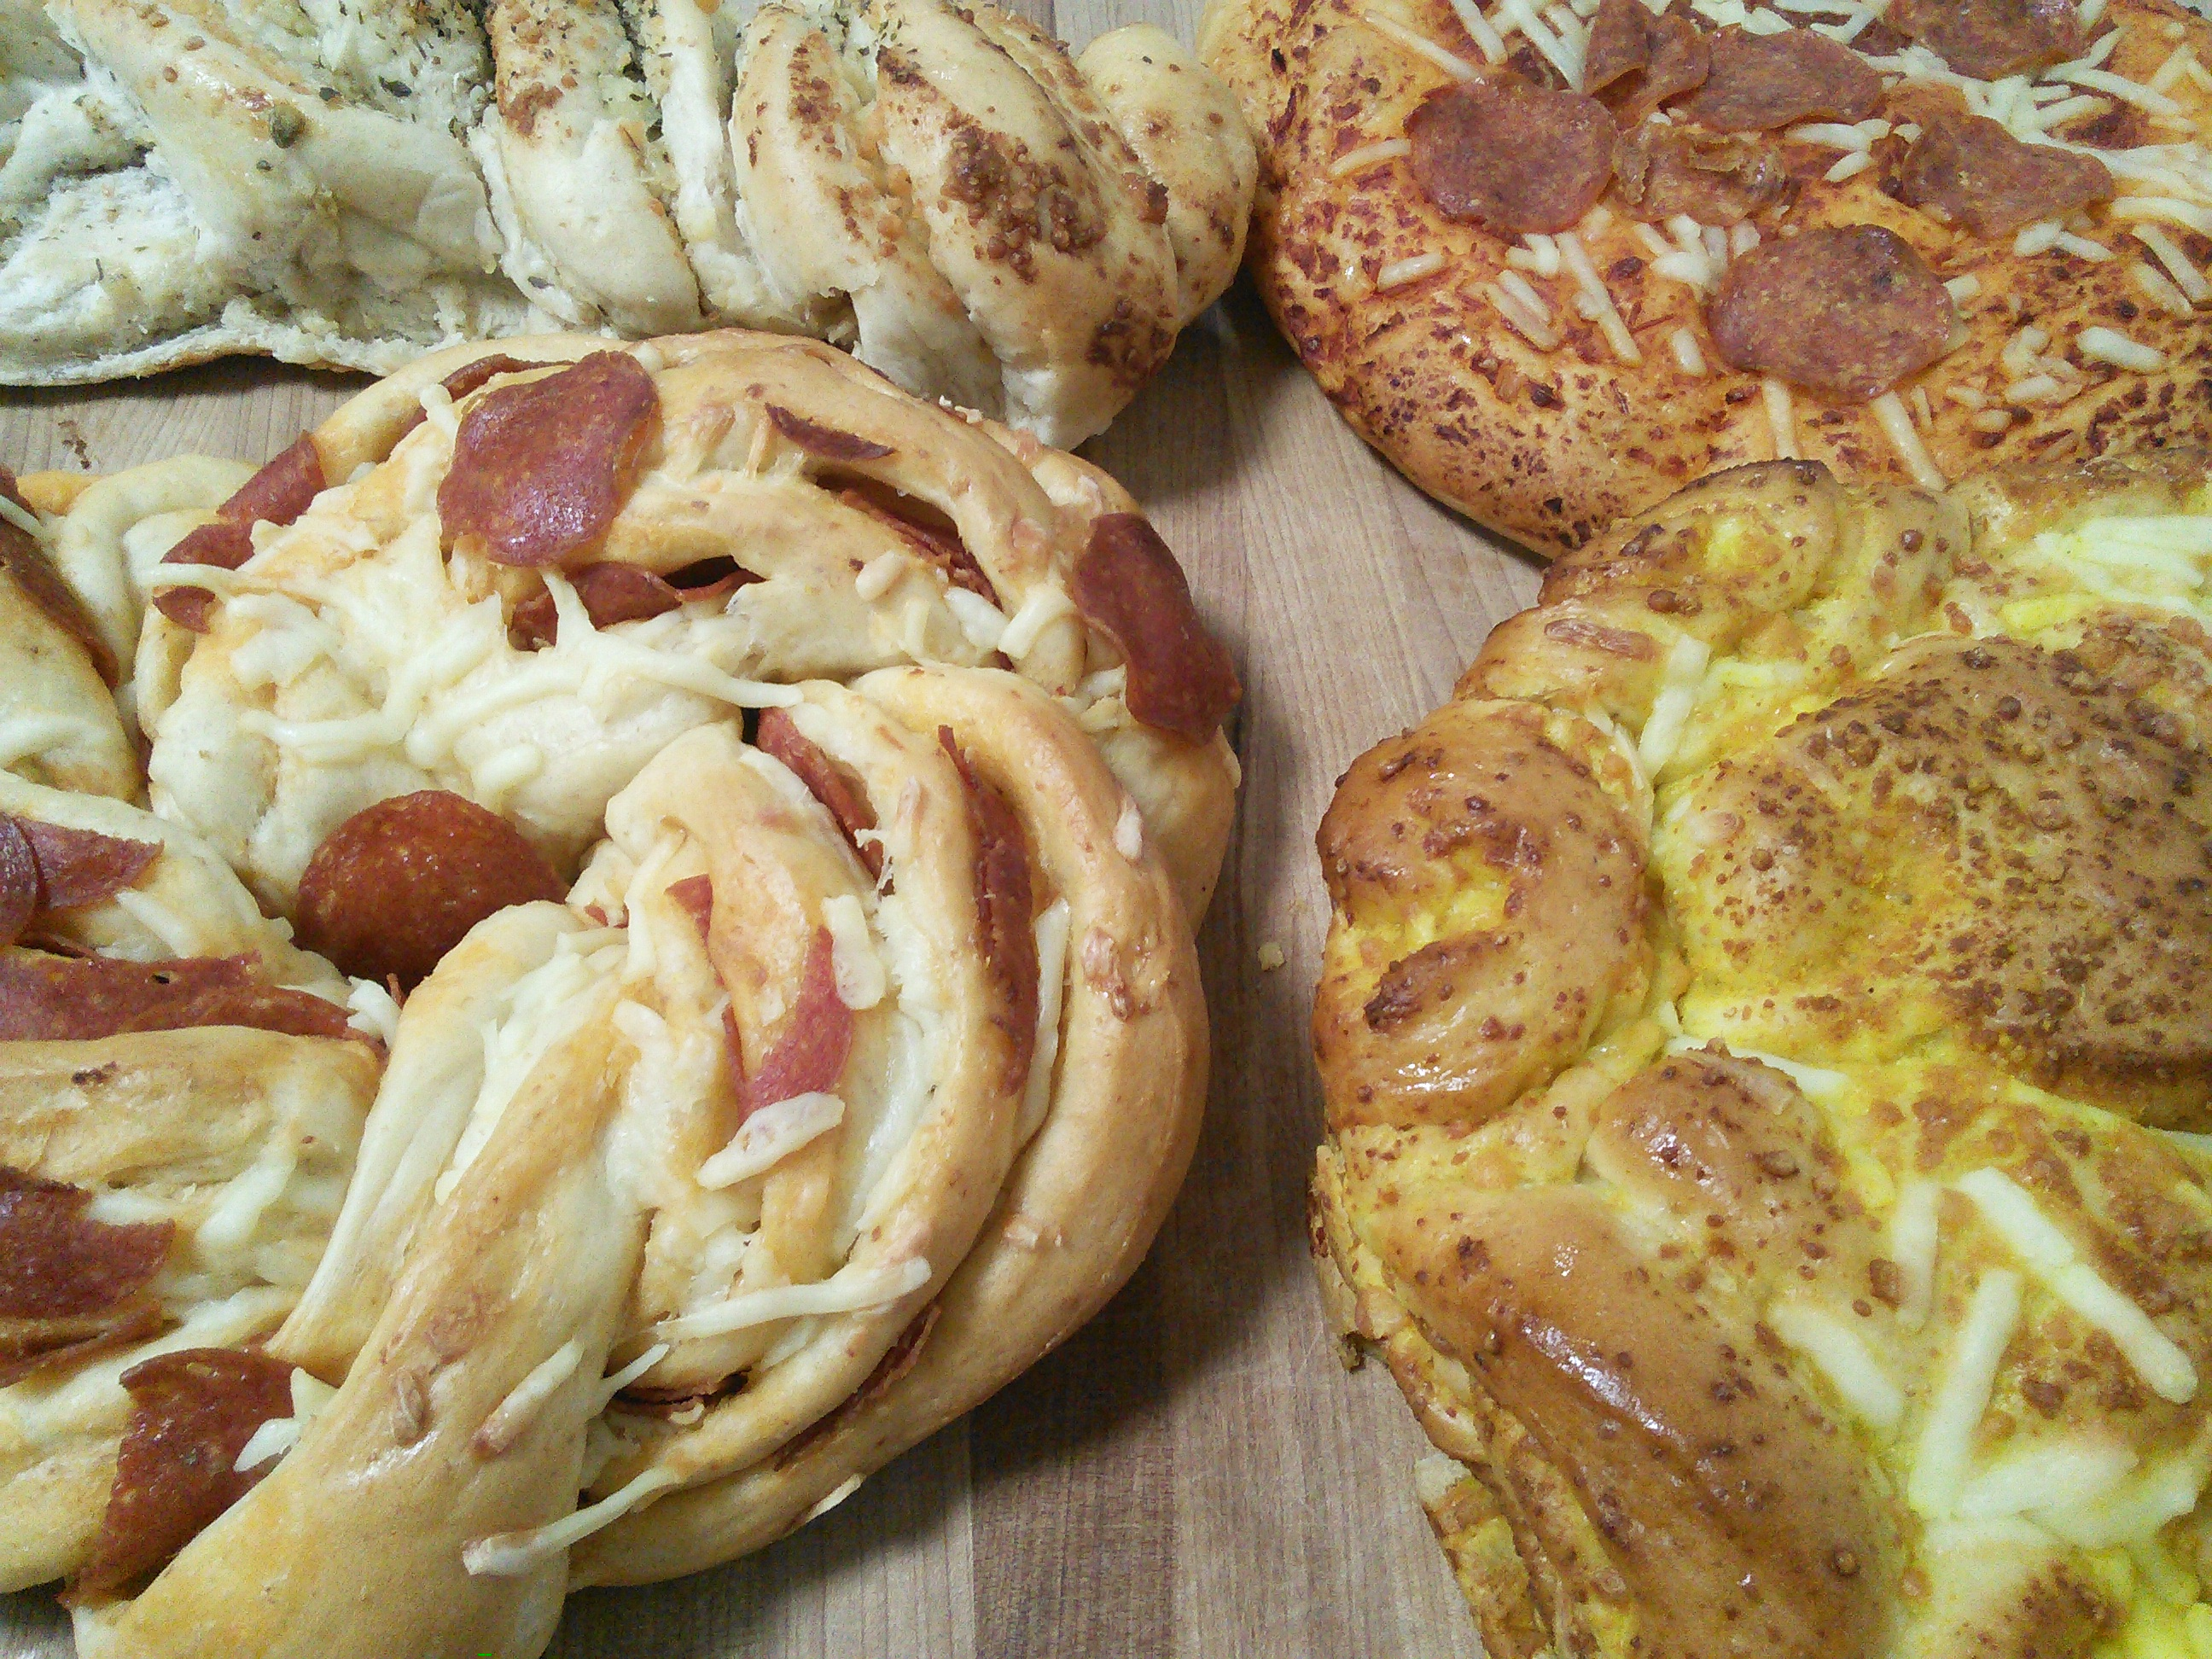 Double Pepperoni Cheese Twist, Pepperoni Pizza Bread, Cheddary Parmesan Rolls, Roasted Garlic Twist